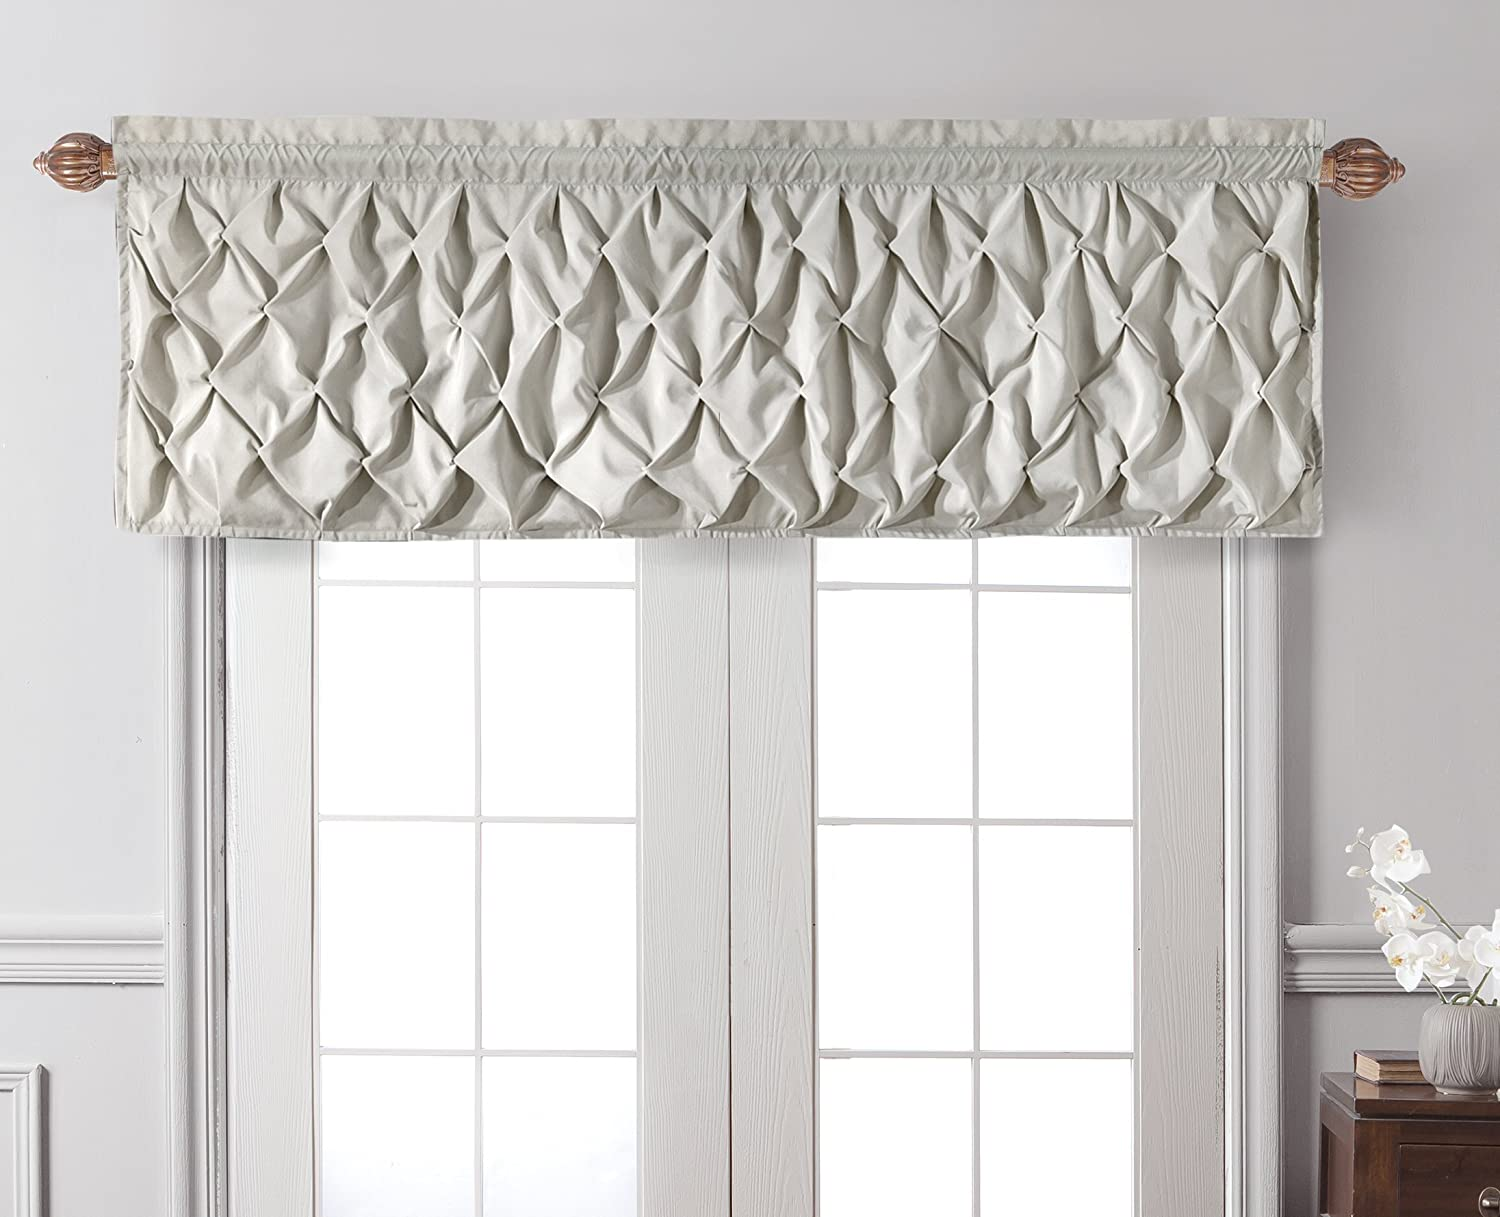 room living to drapes curtain jcpenney size see come of small full penney sensational valance harder window custom side treatments ideas valances penneys houses the for sell jc penneyus